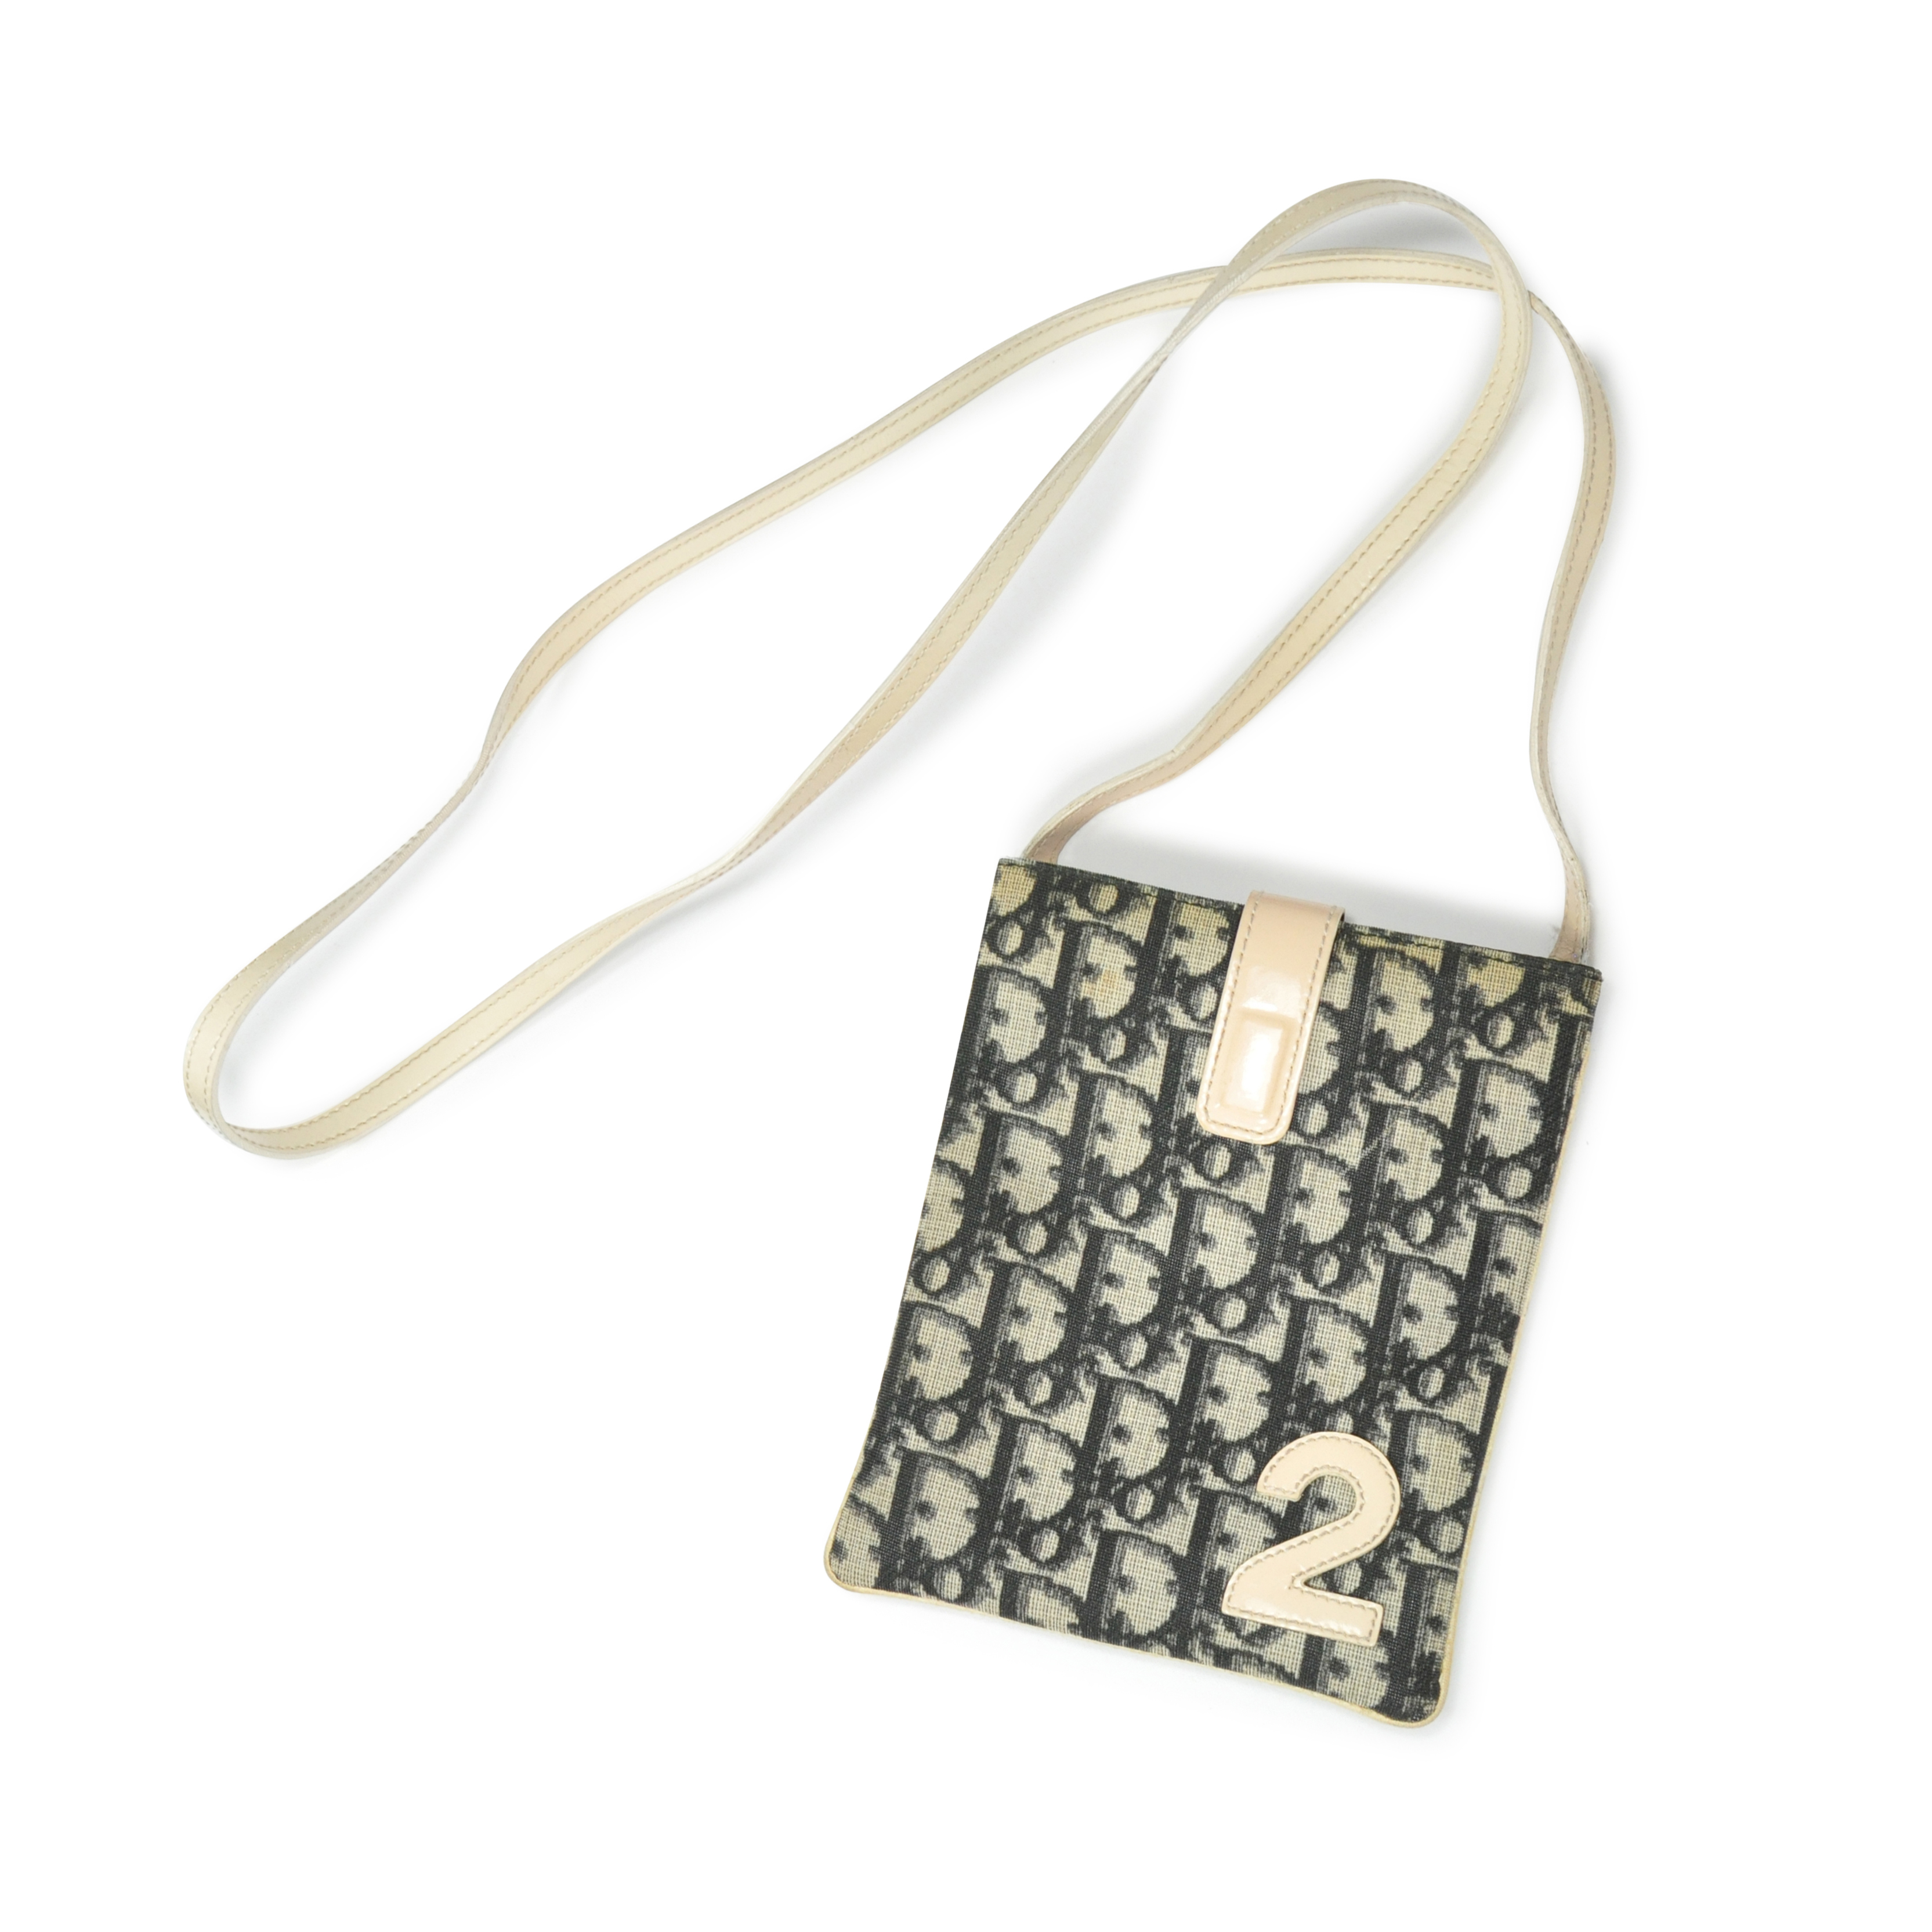 76c2b3d8abba Authentic Second Hand Christian Dior Monogram Sling Bag (PSS-229-00013)